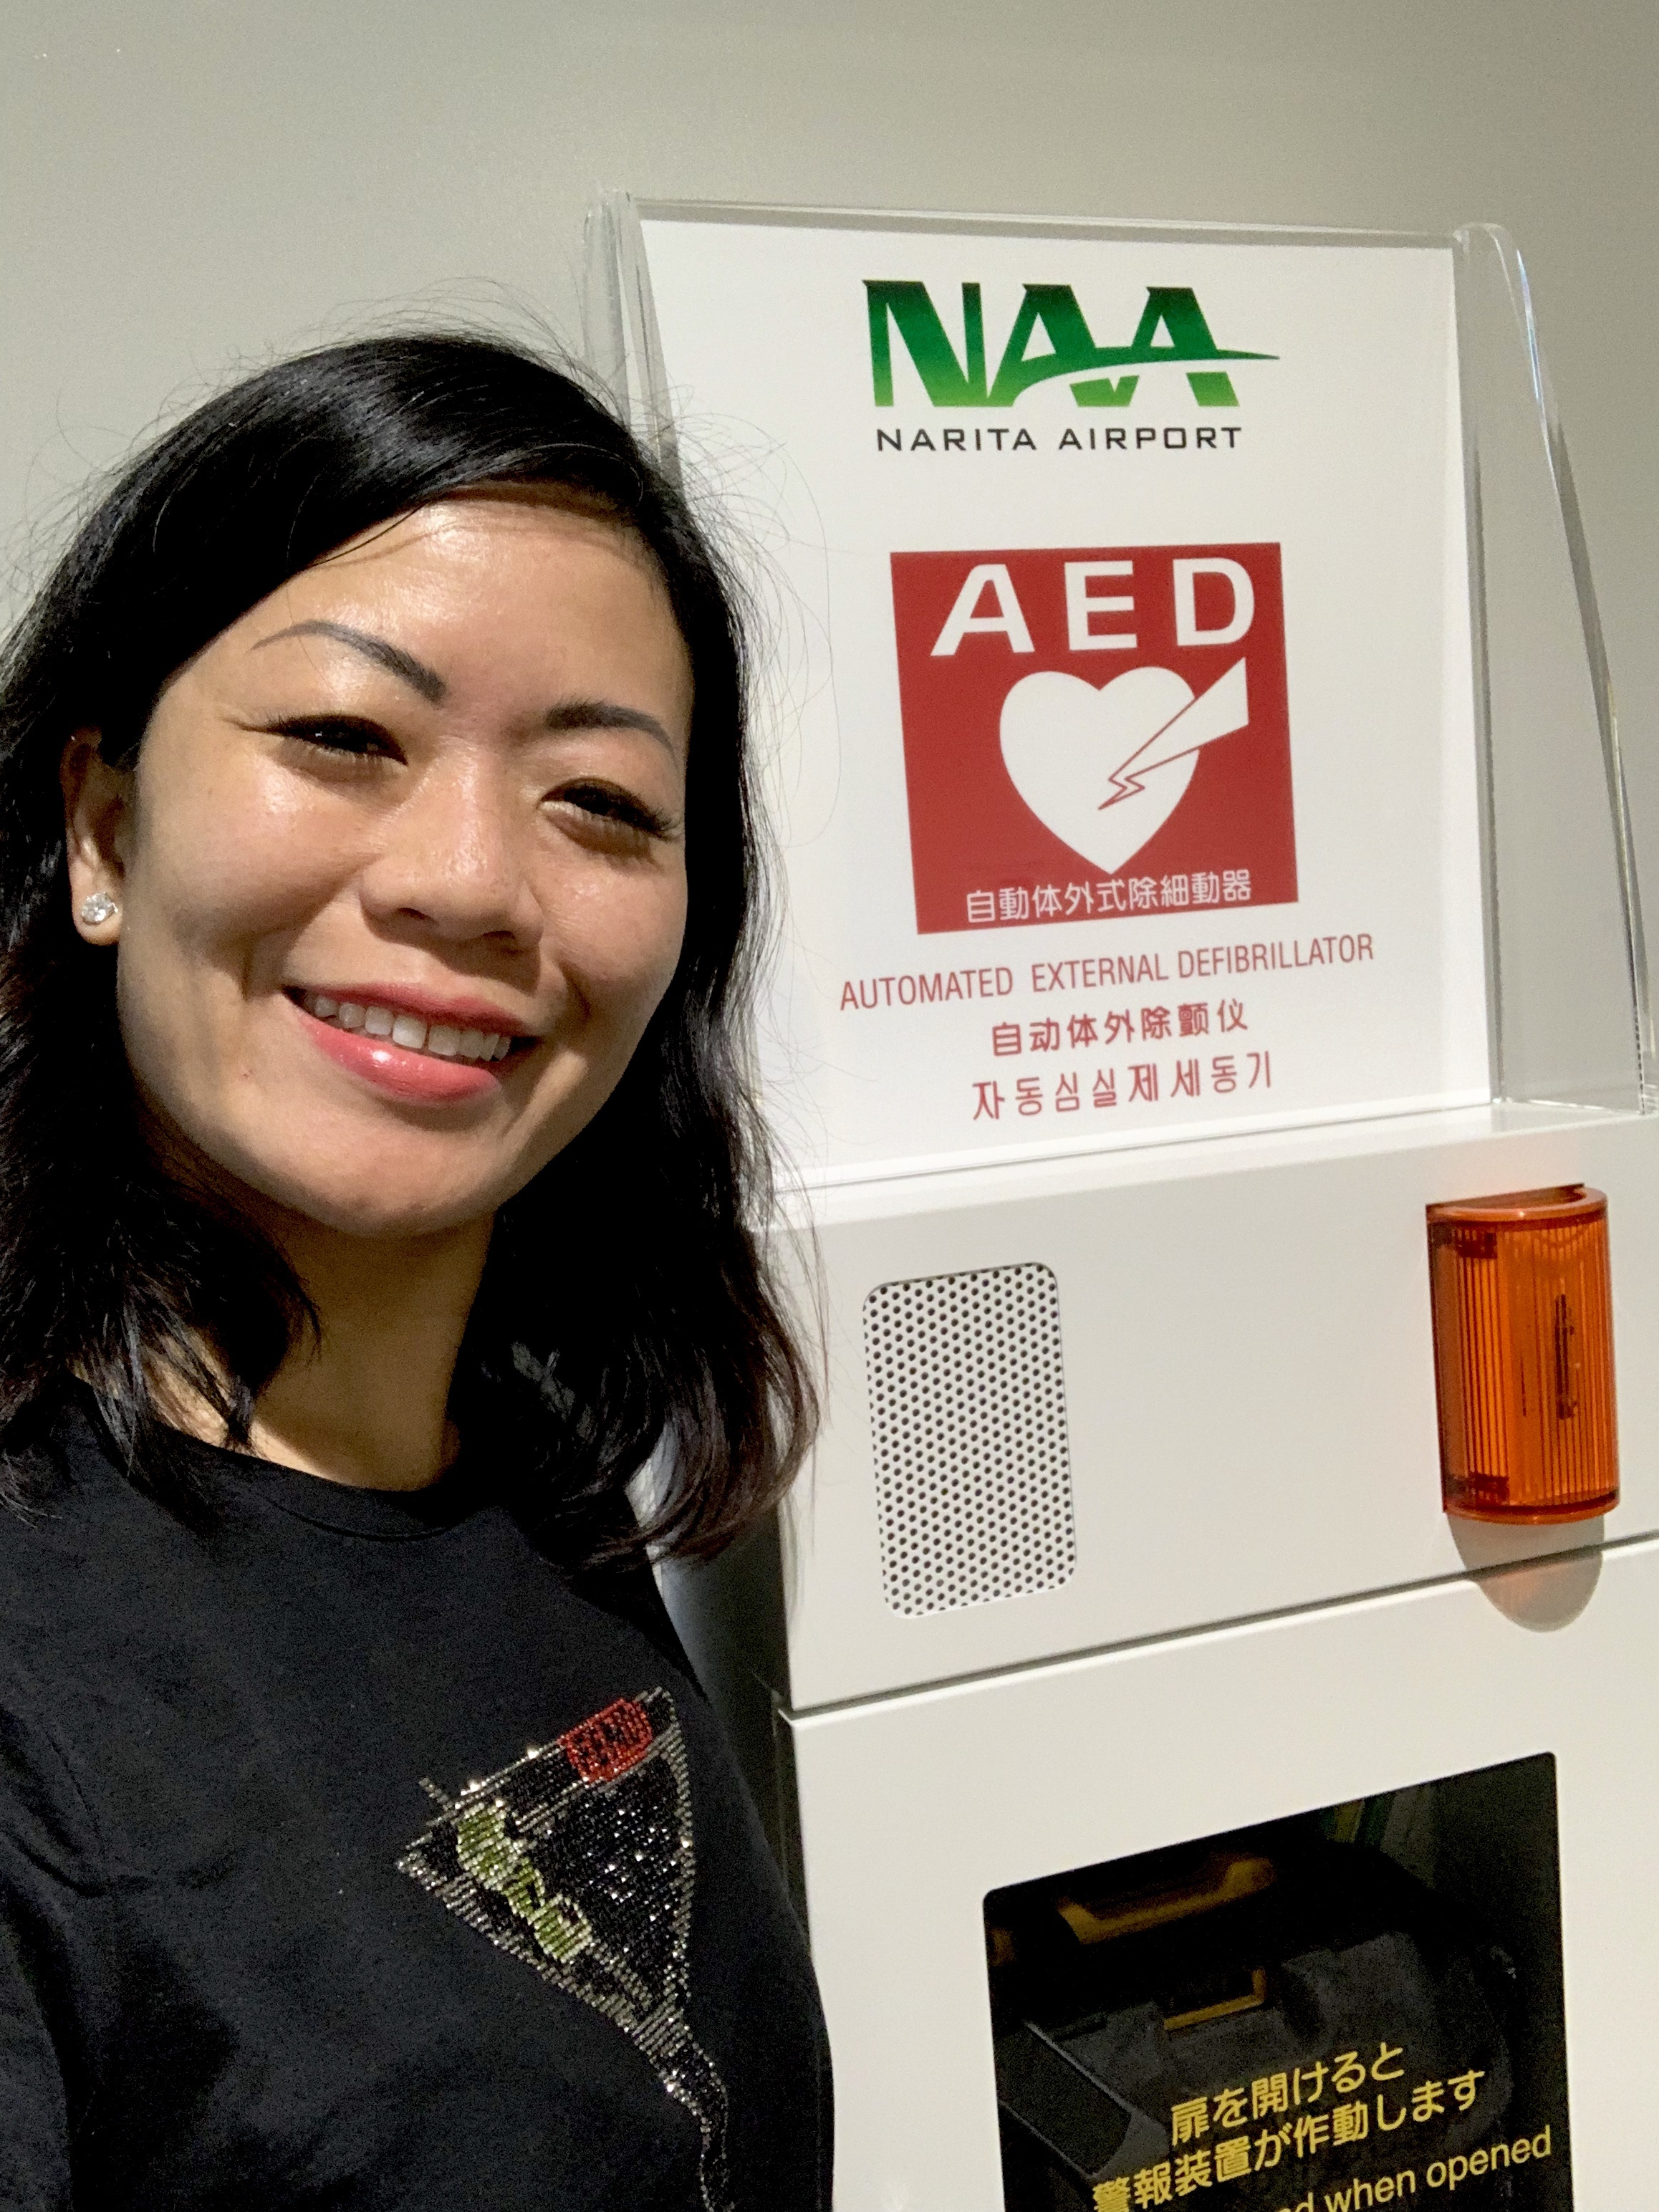 AED at Narita Airport